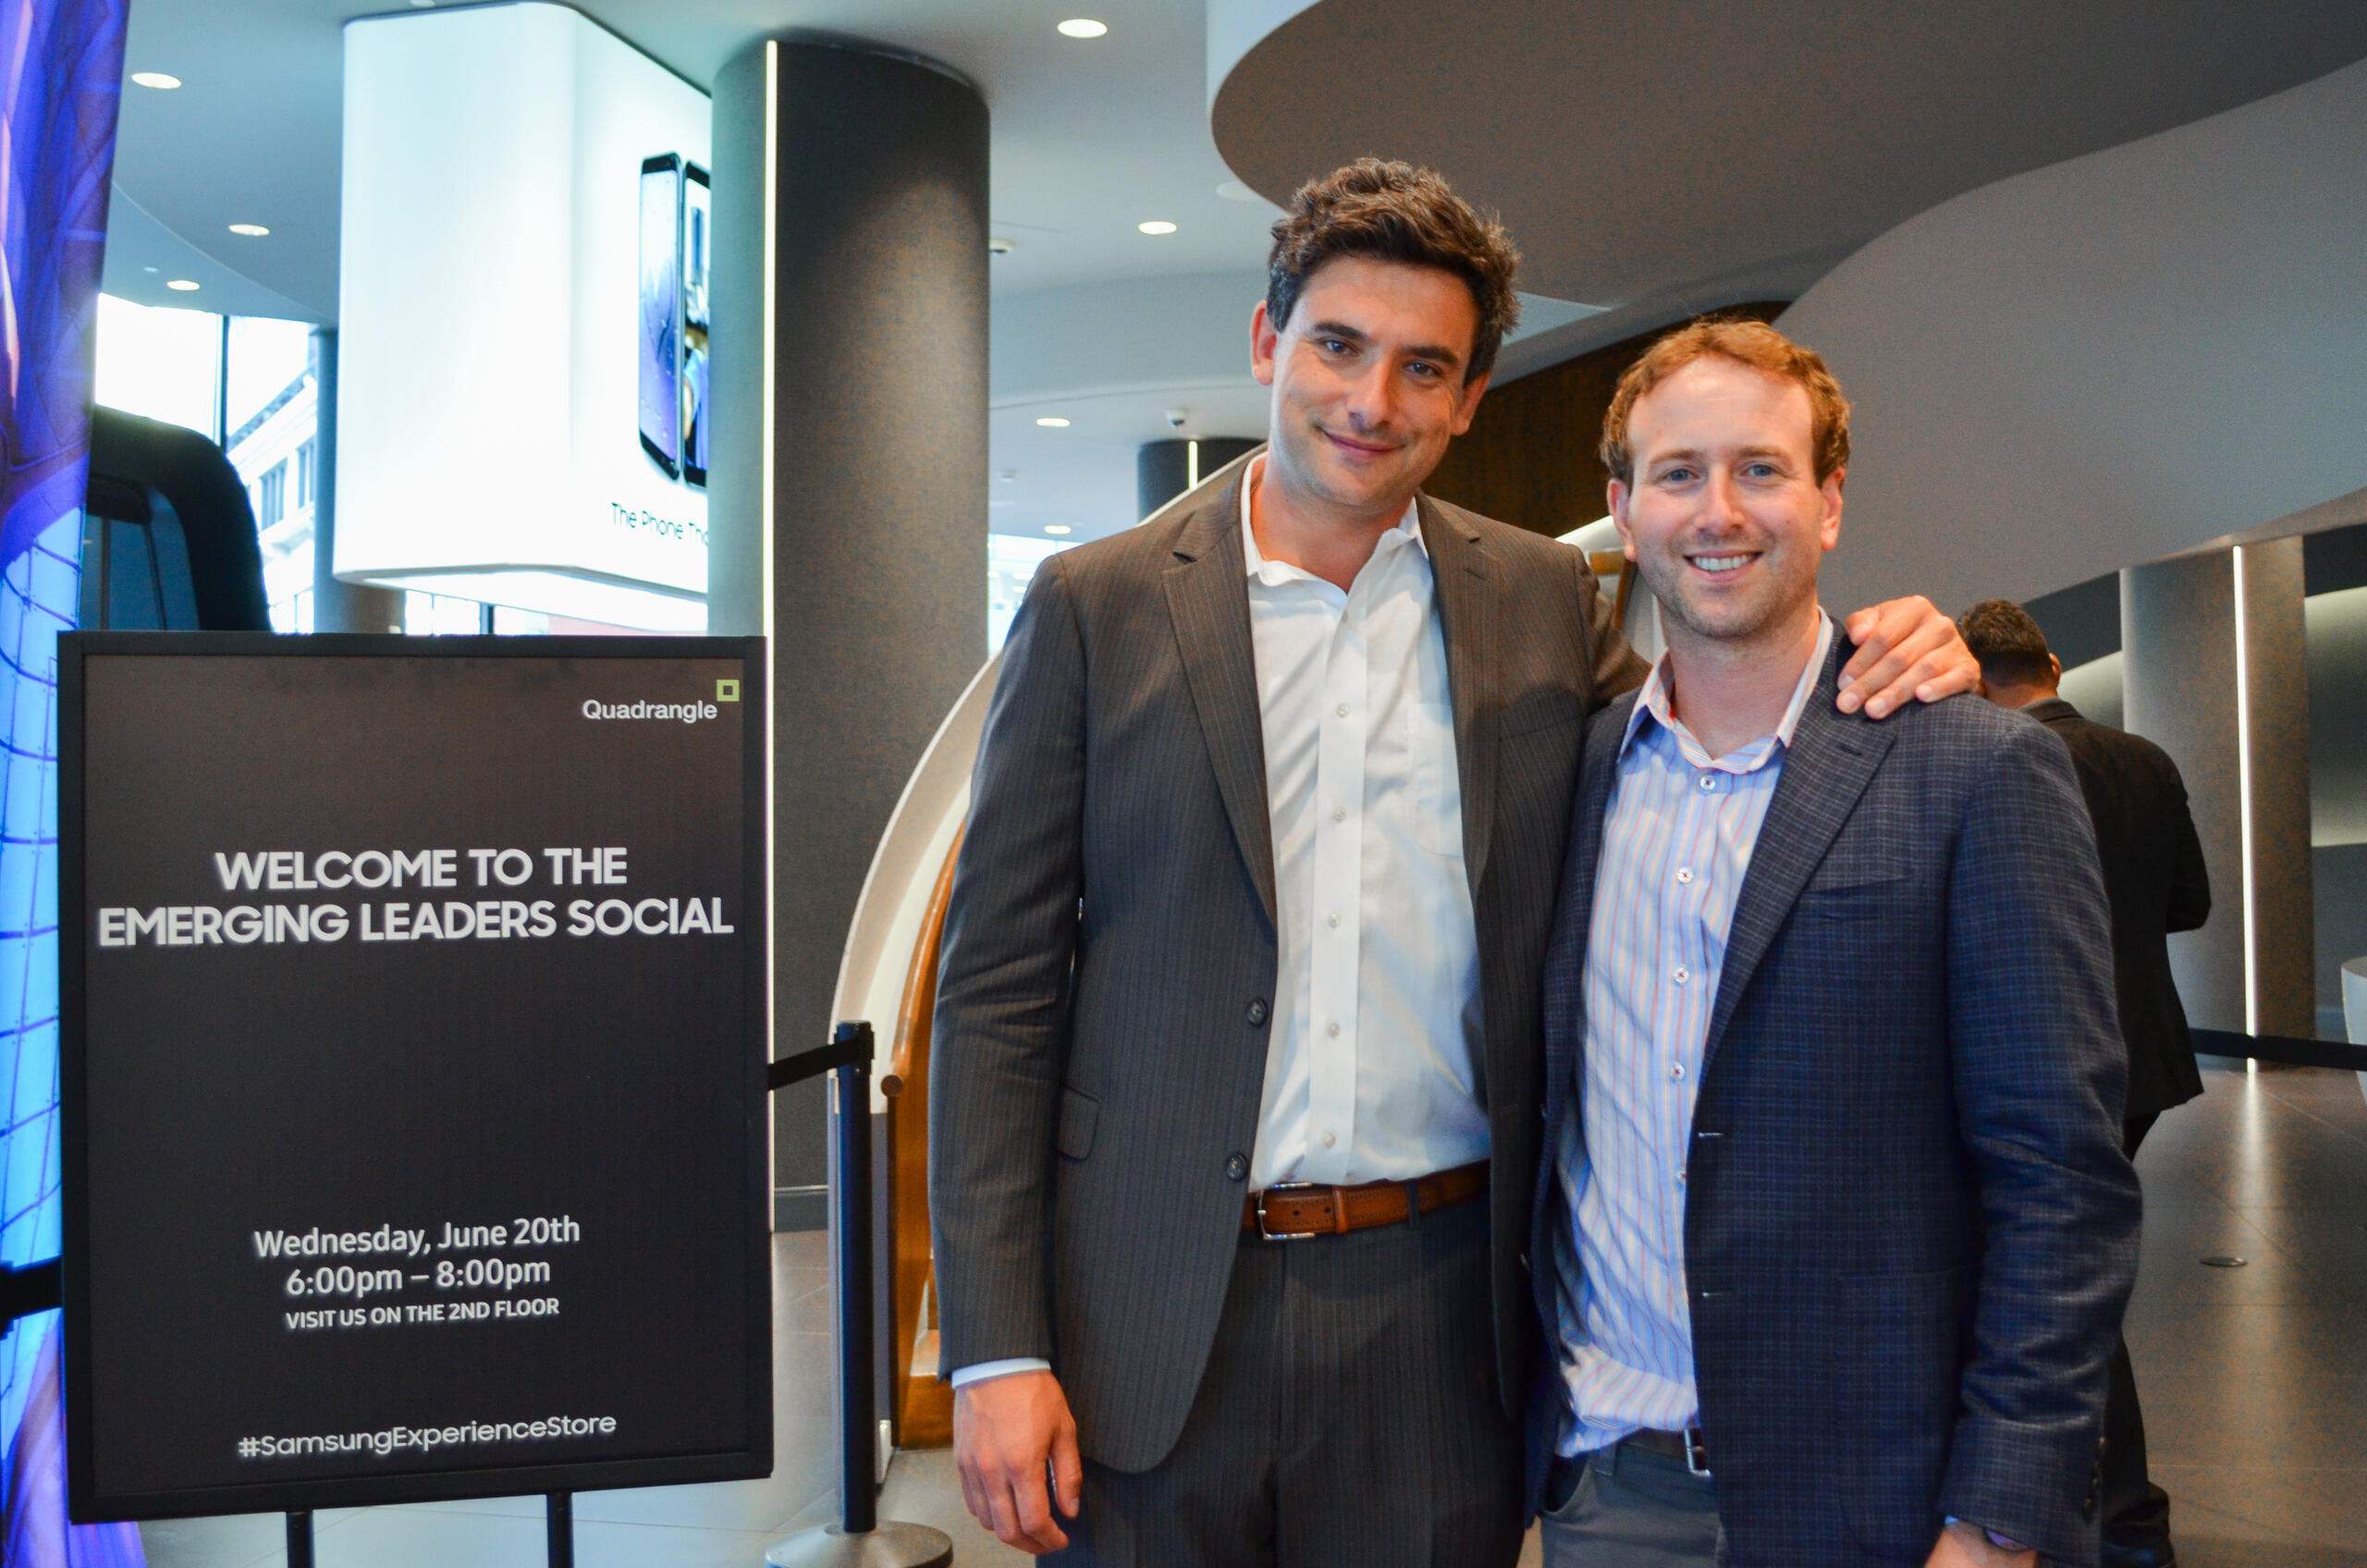 two men pose for a photo in front of a curving staircase and beside Emerging Leaders Social signage